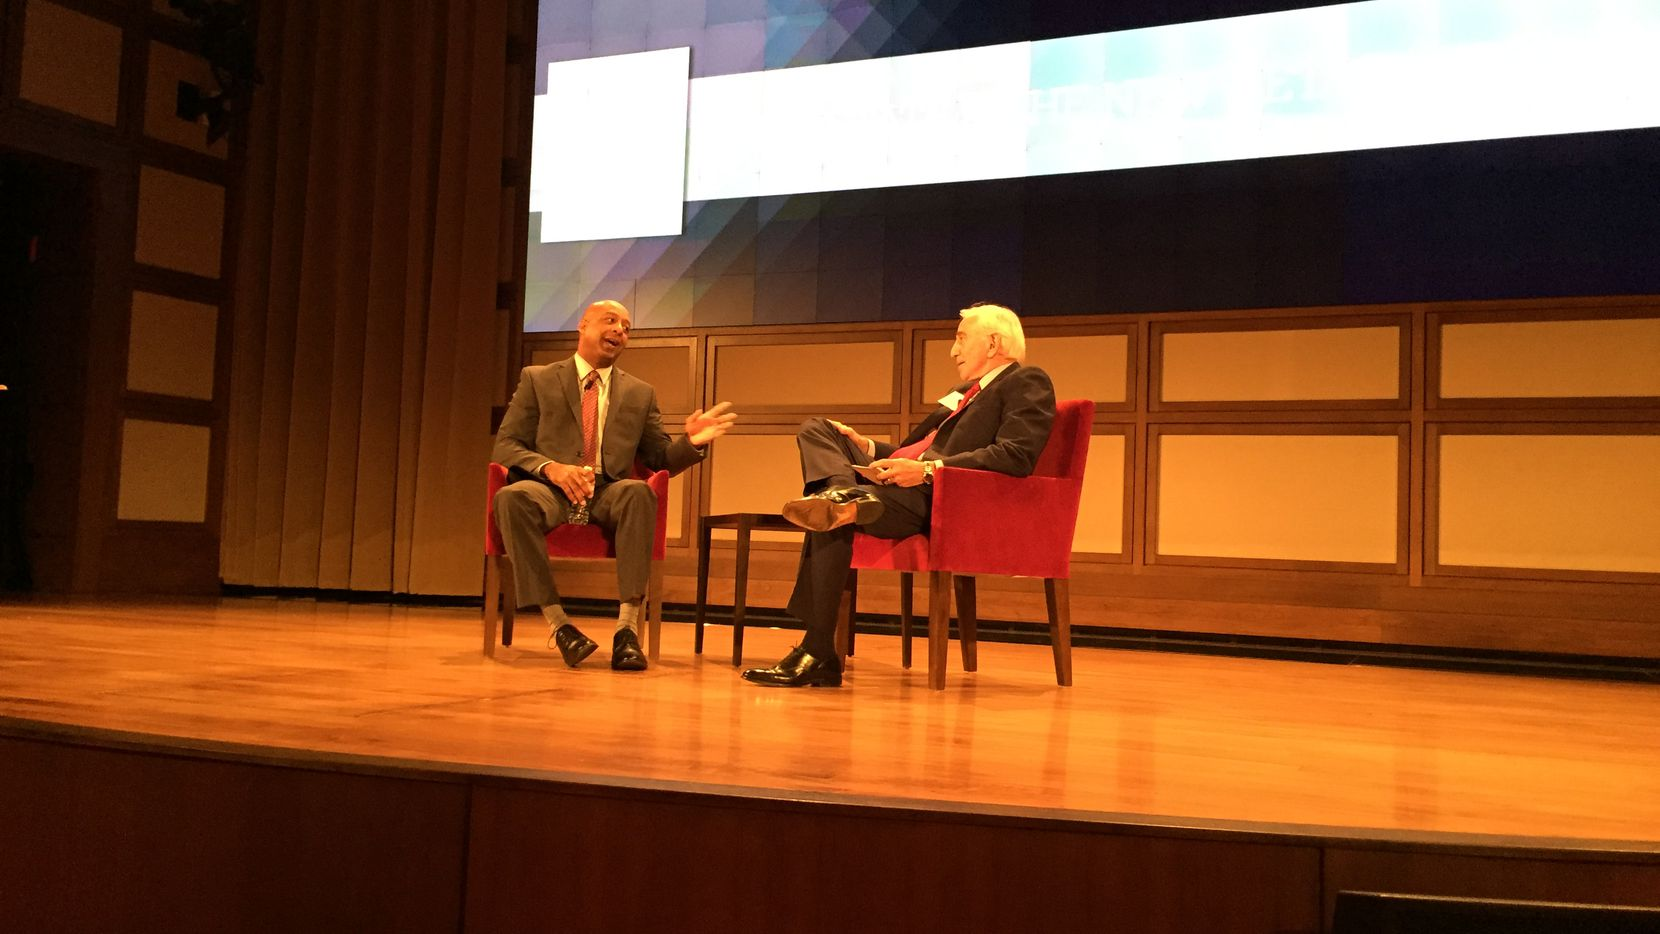 J.C. Penney CEO Marvin Ellison has a fireside chat with Dallas real estate veteran Herb Weitzman at the Bush Center on the SMU campus on Wednesday, January 11, 2017.